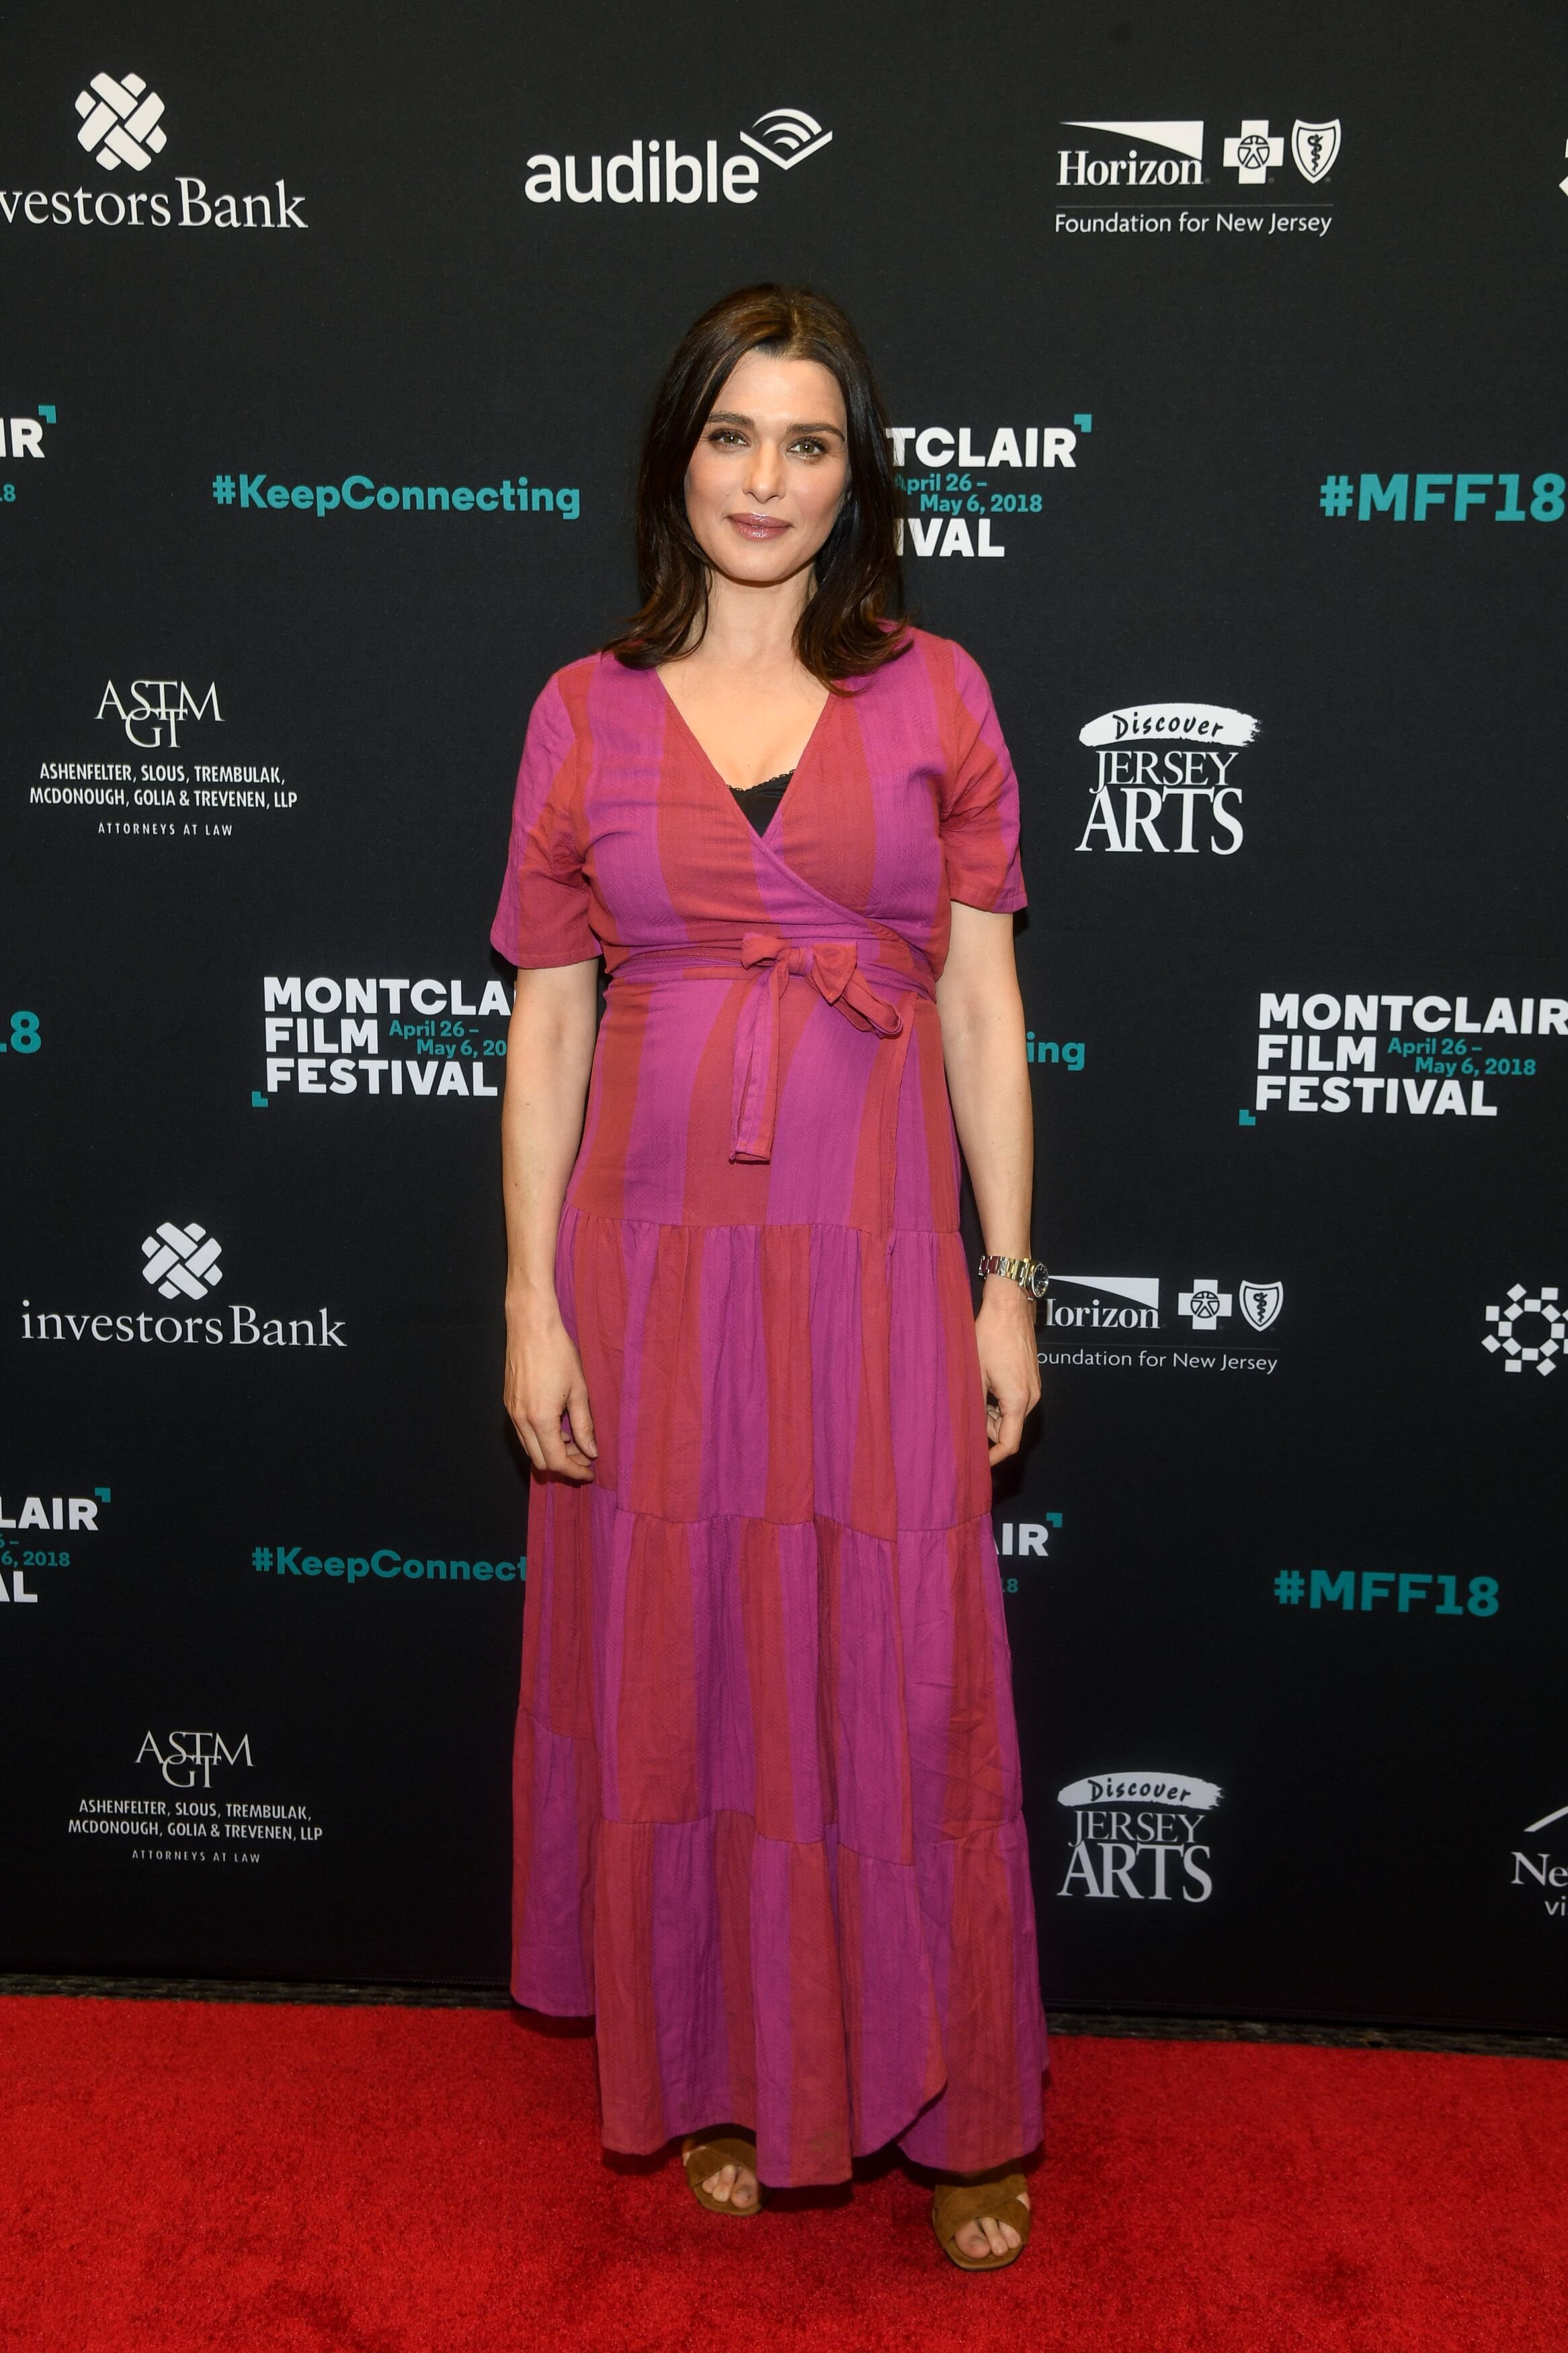 Rachel Weisz arrives at the Montclair Film Festival. | Source: Getty Images